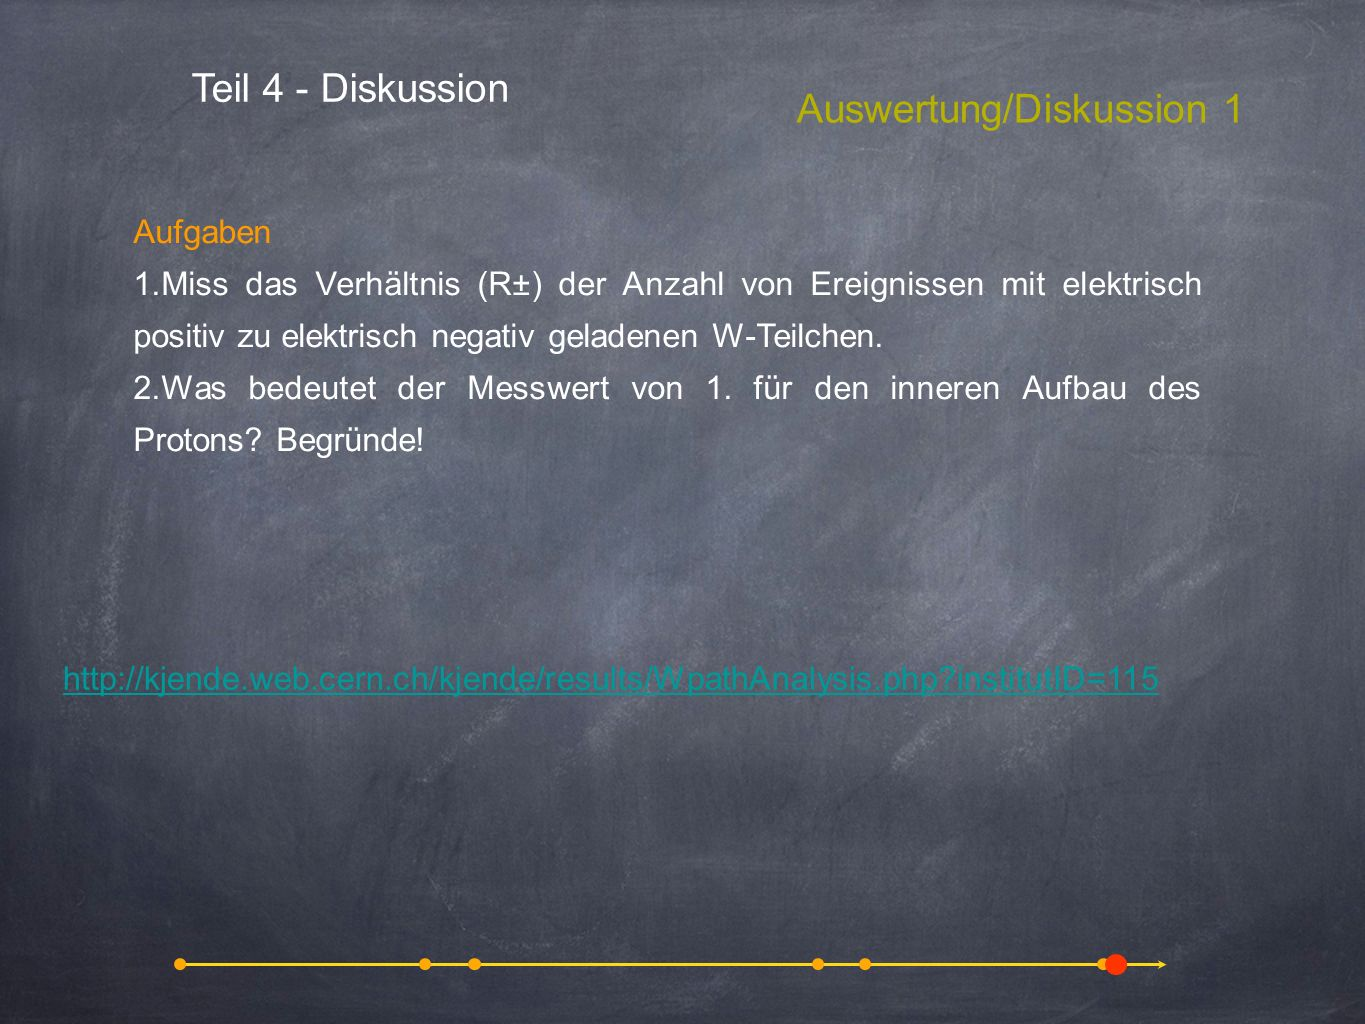 Auswertung/Diskussion 1